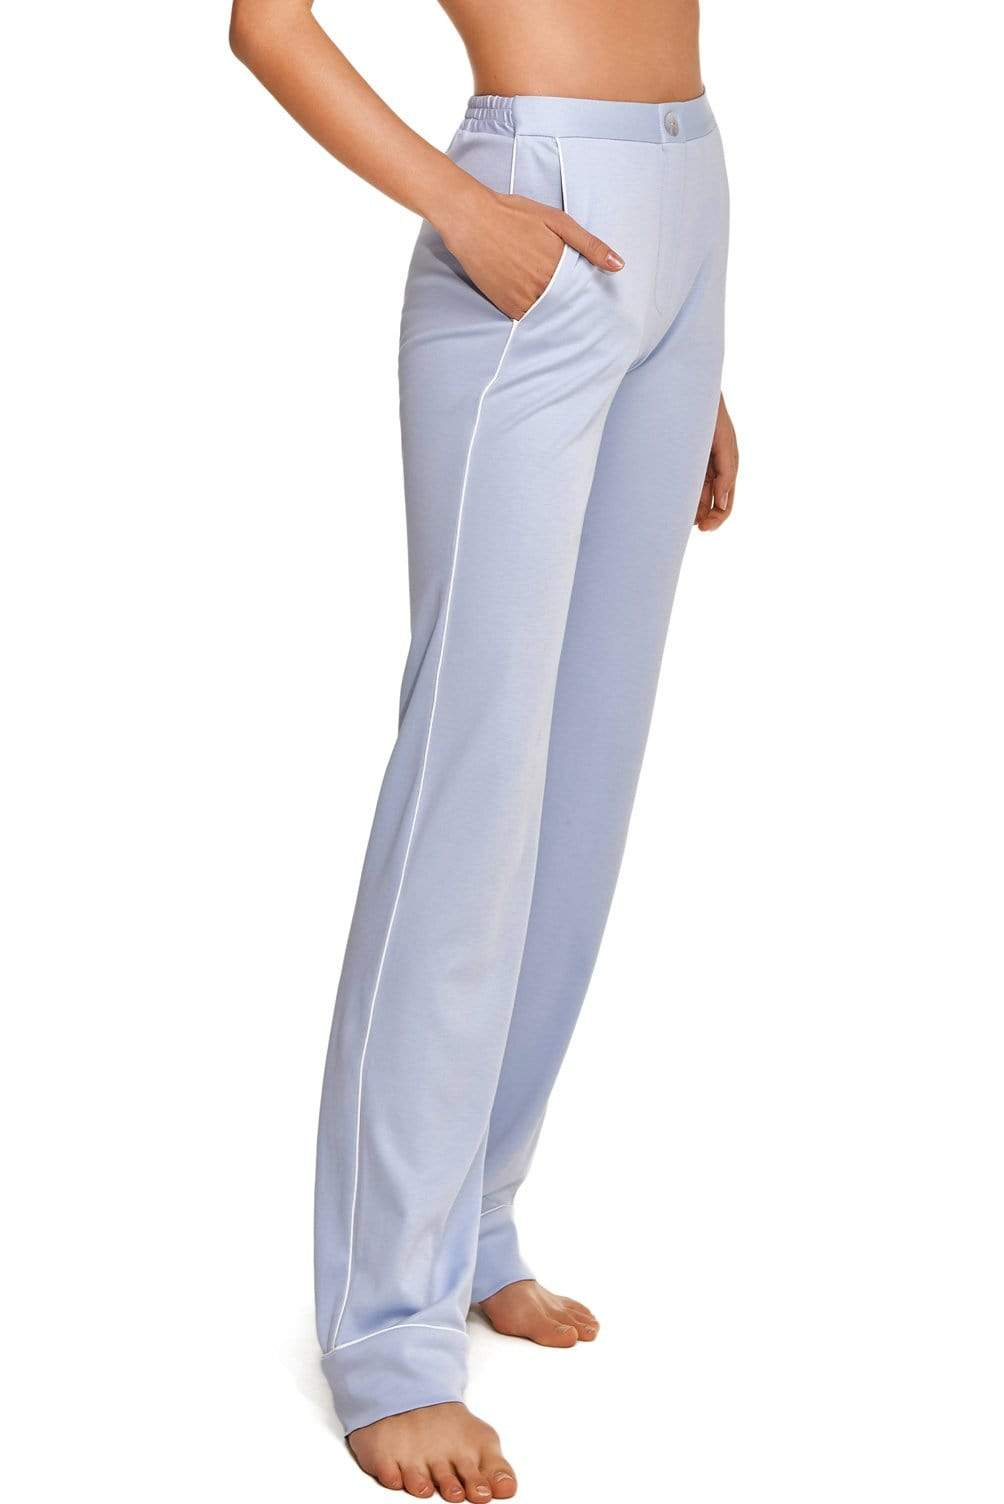 Slow Nature® Essentials Sleep & Loungewear PANTS. Organic Cotton. sustainable fashion ethical fashion